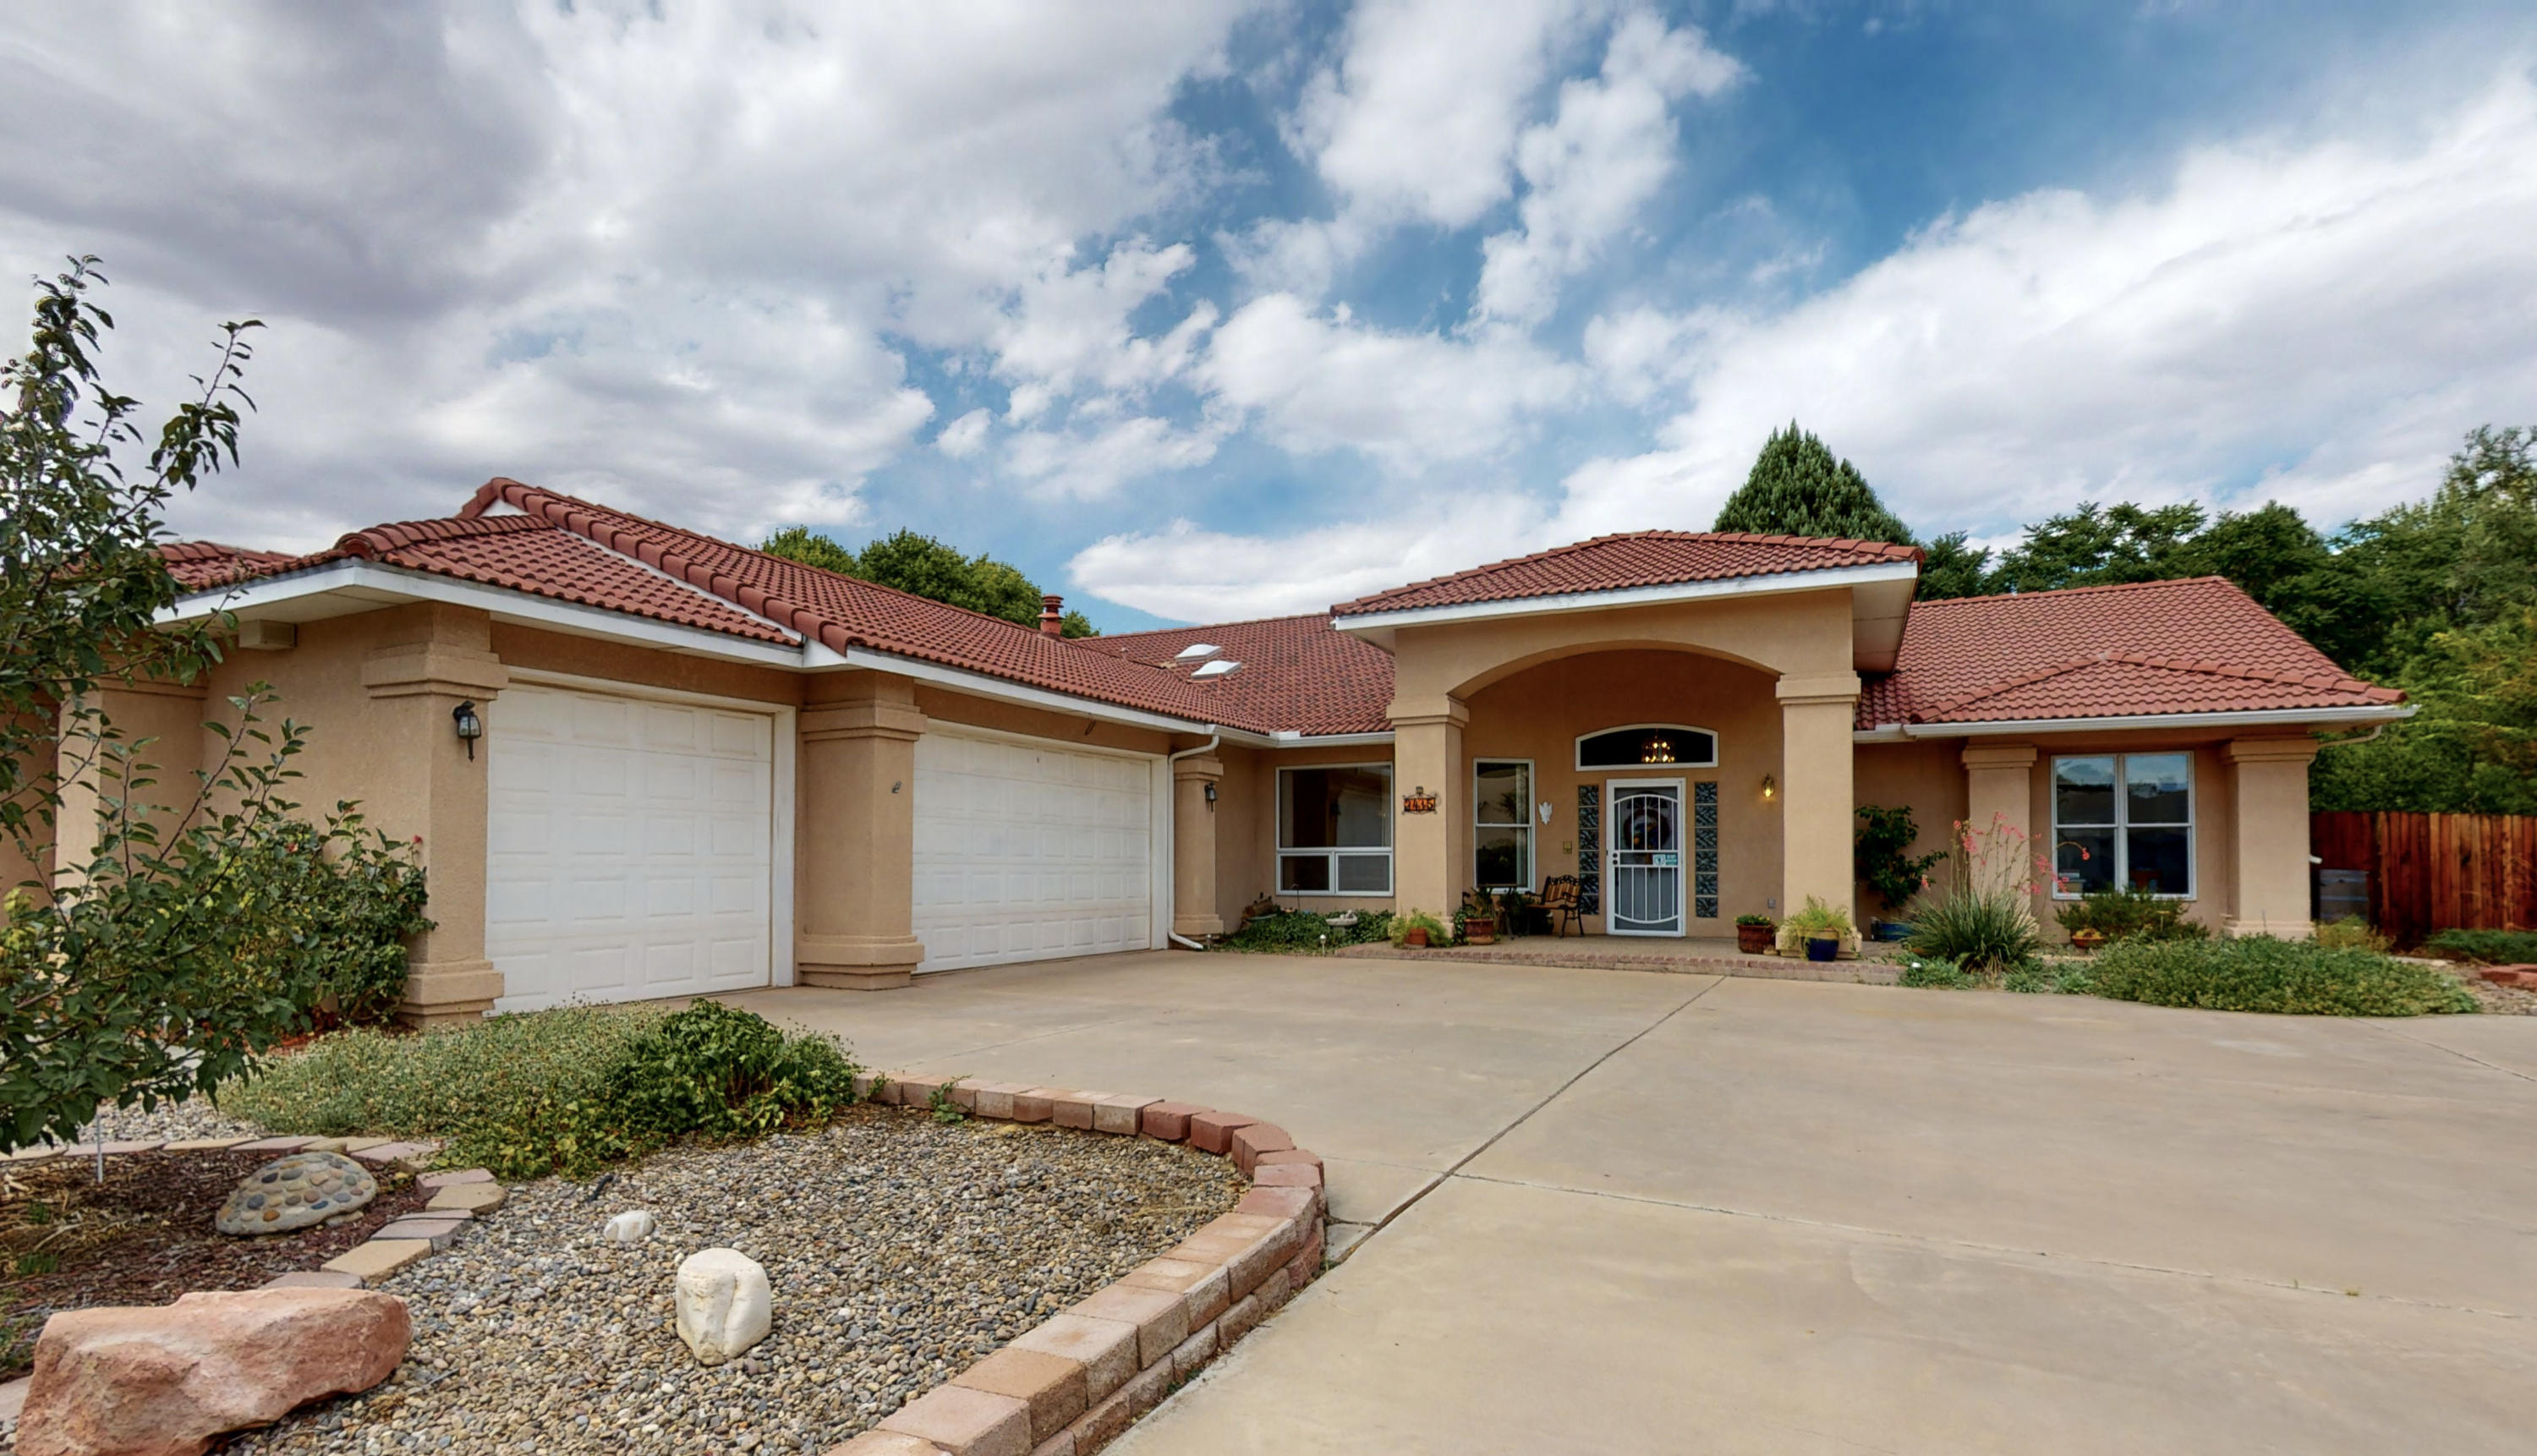 2415 Don Onofre Trail NW Property Photo - Albuquerque, NM real estate listing